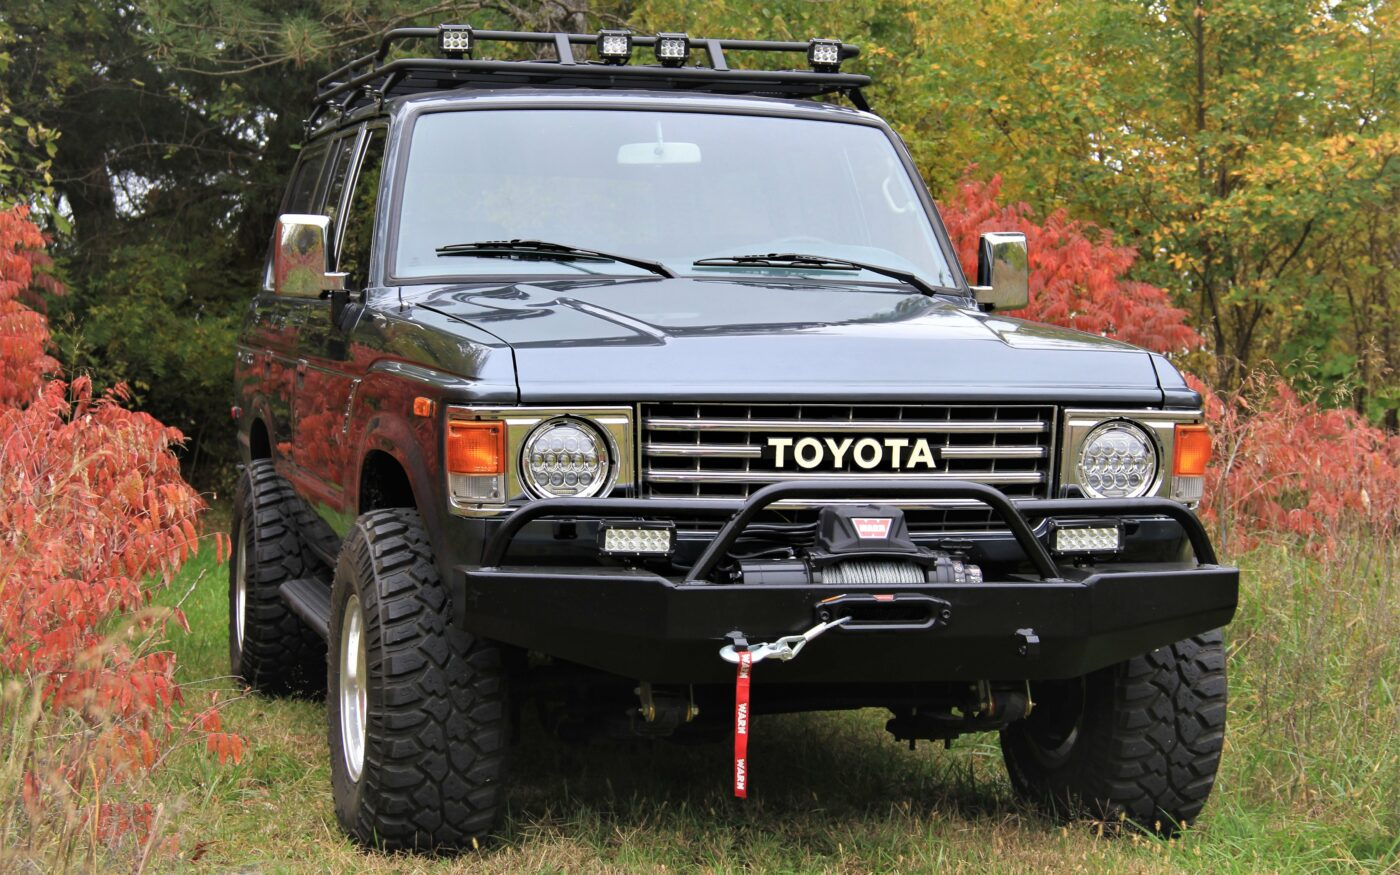 Toyota-Land-Cruiser-FJ60-FJ62-Black-1400x875.jpg